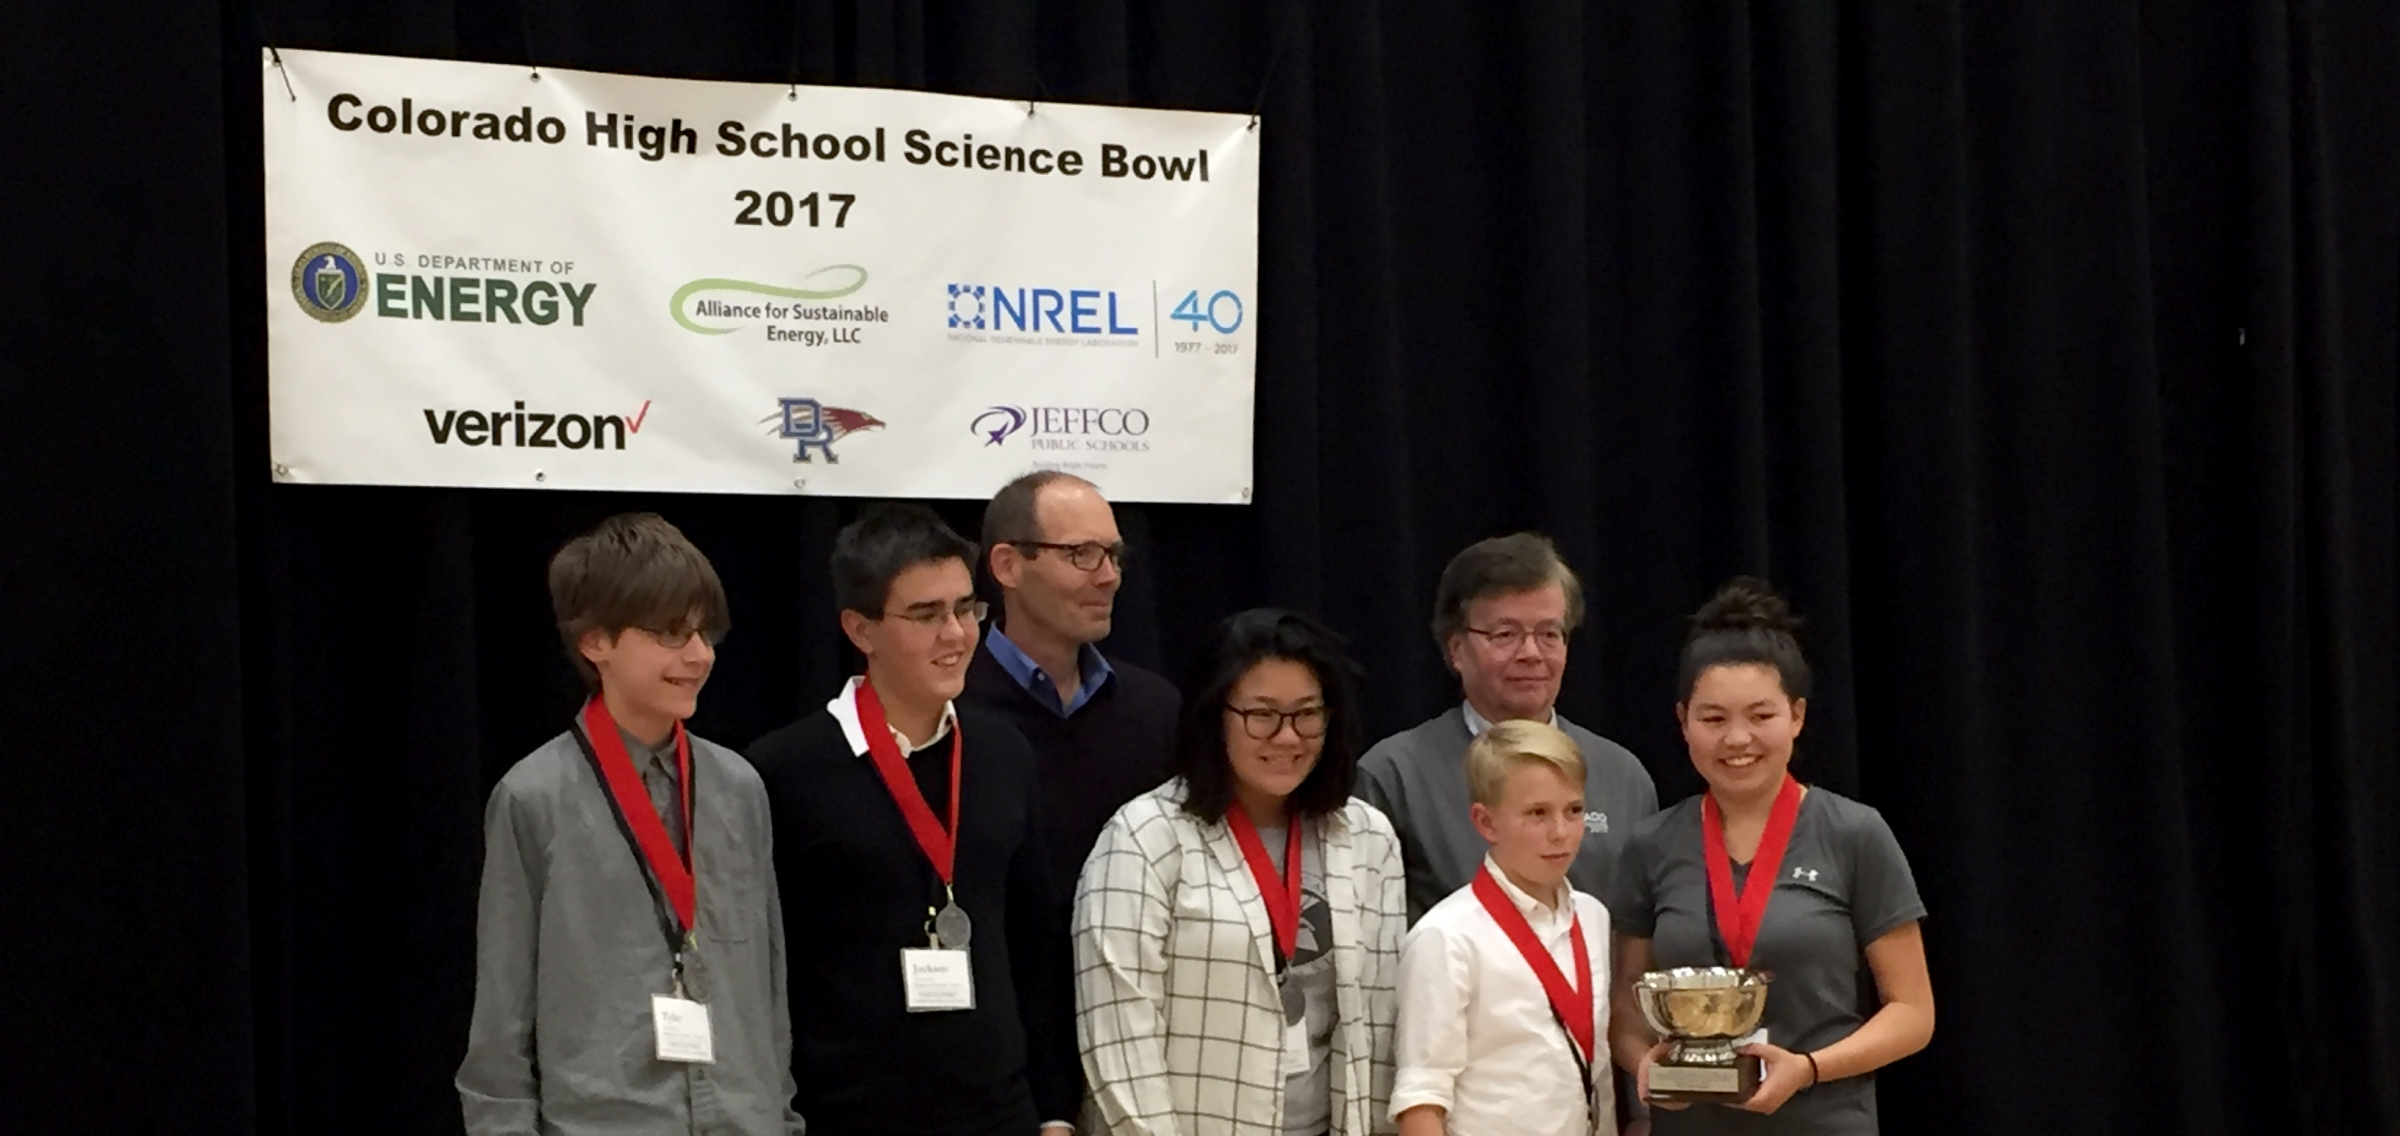 The High School Science Bowl team poses with their trophy.